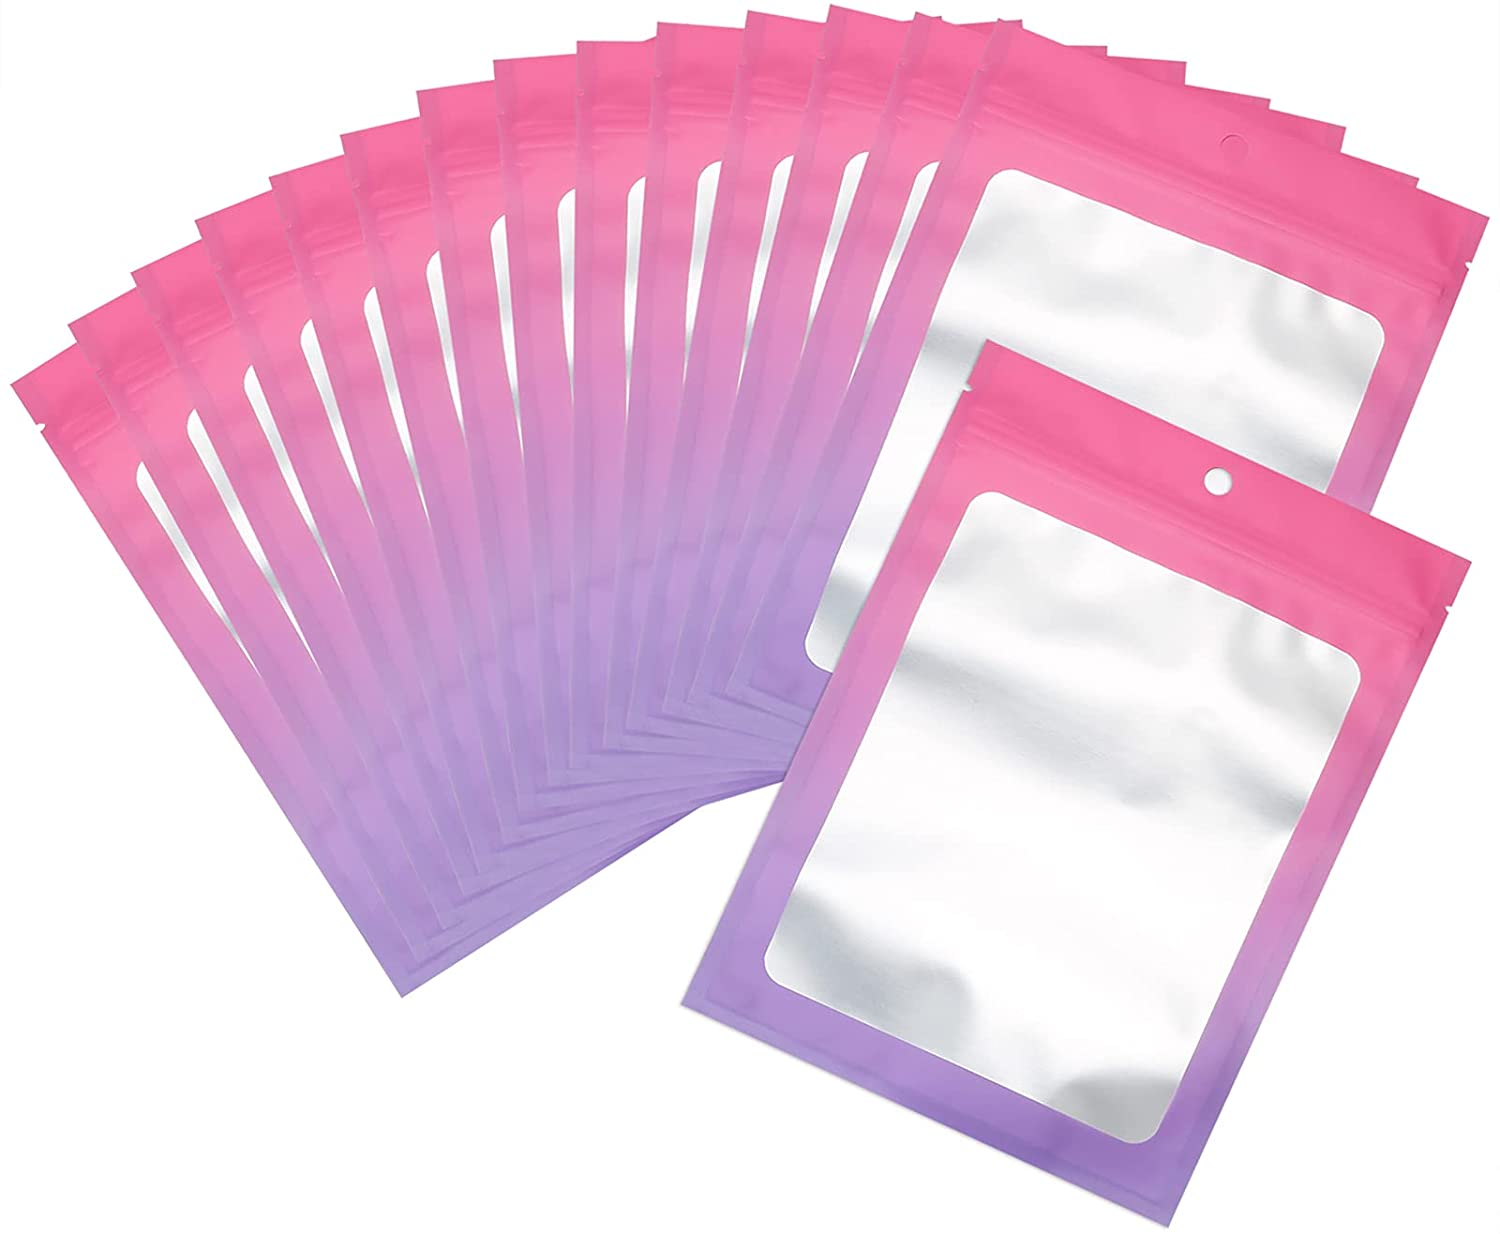 100 Pcs Resealable Mylar Ziplock Food Storage Bags, Gradient Color Smell Proof Bag with Clear Window, Packaging Pouch for Coffee Beans Candy Sample Food (Pink Purple, 5.9 X 8.6 Inch)